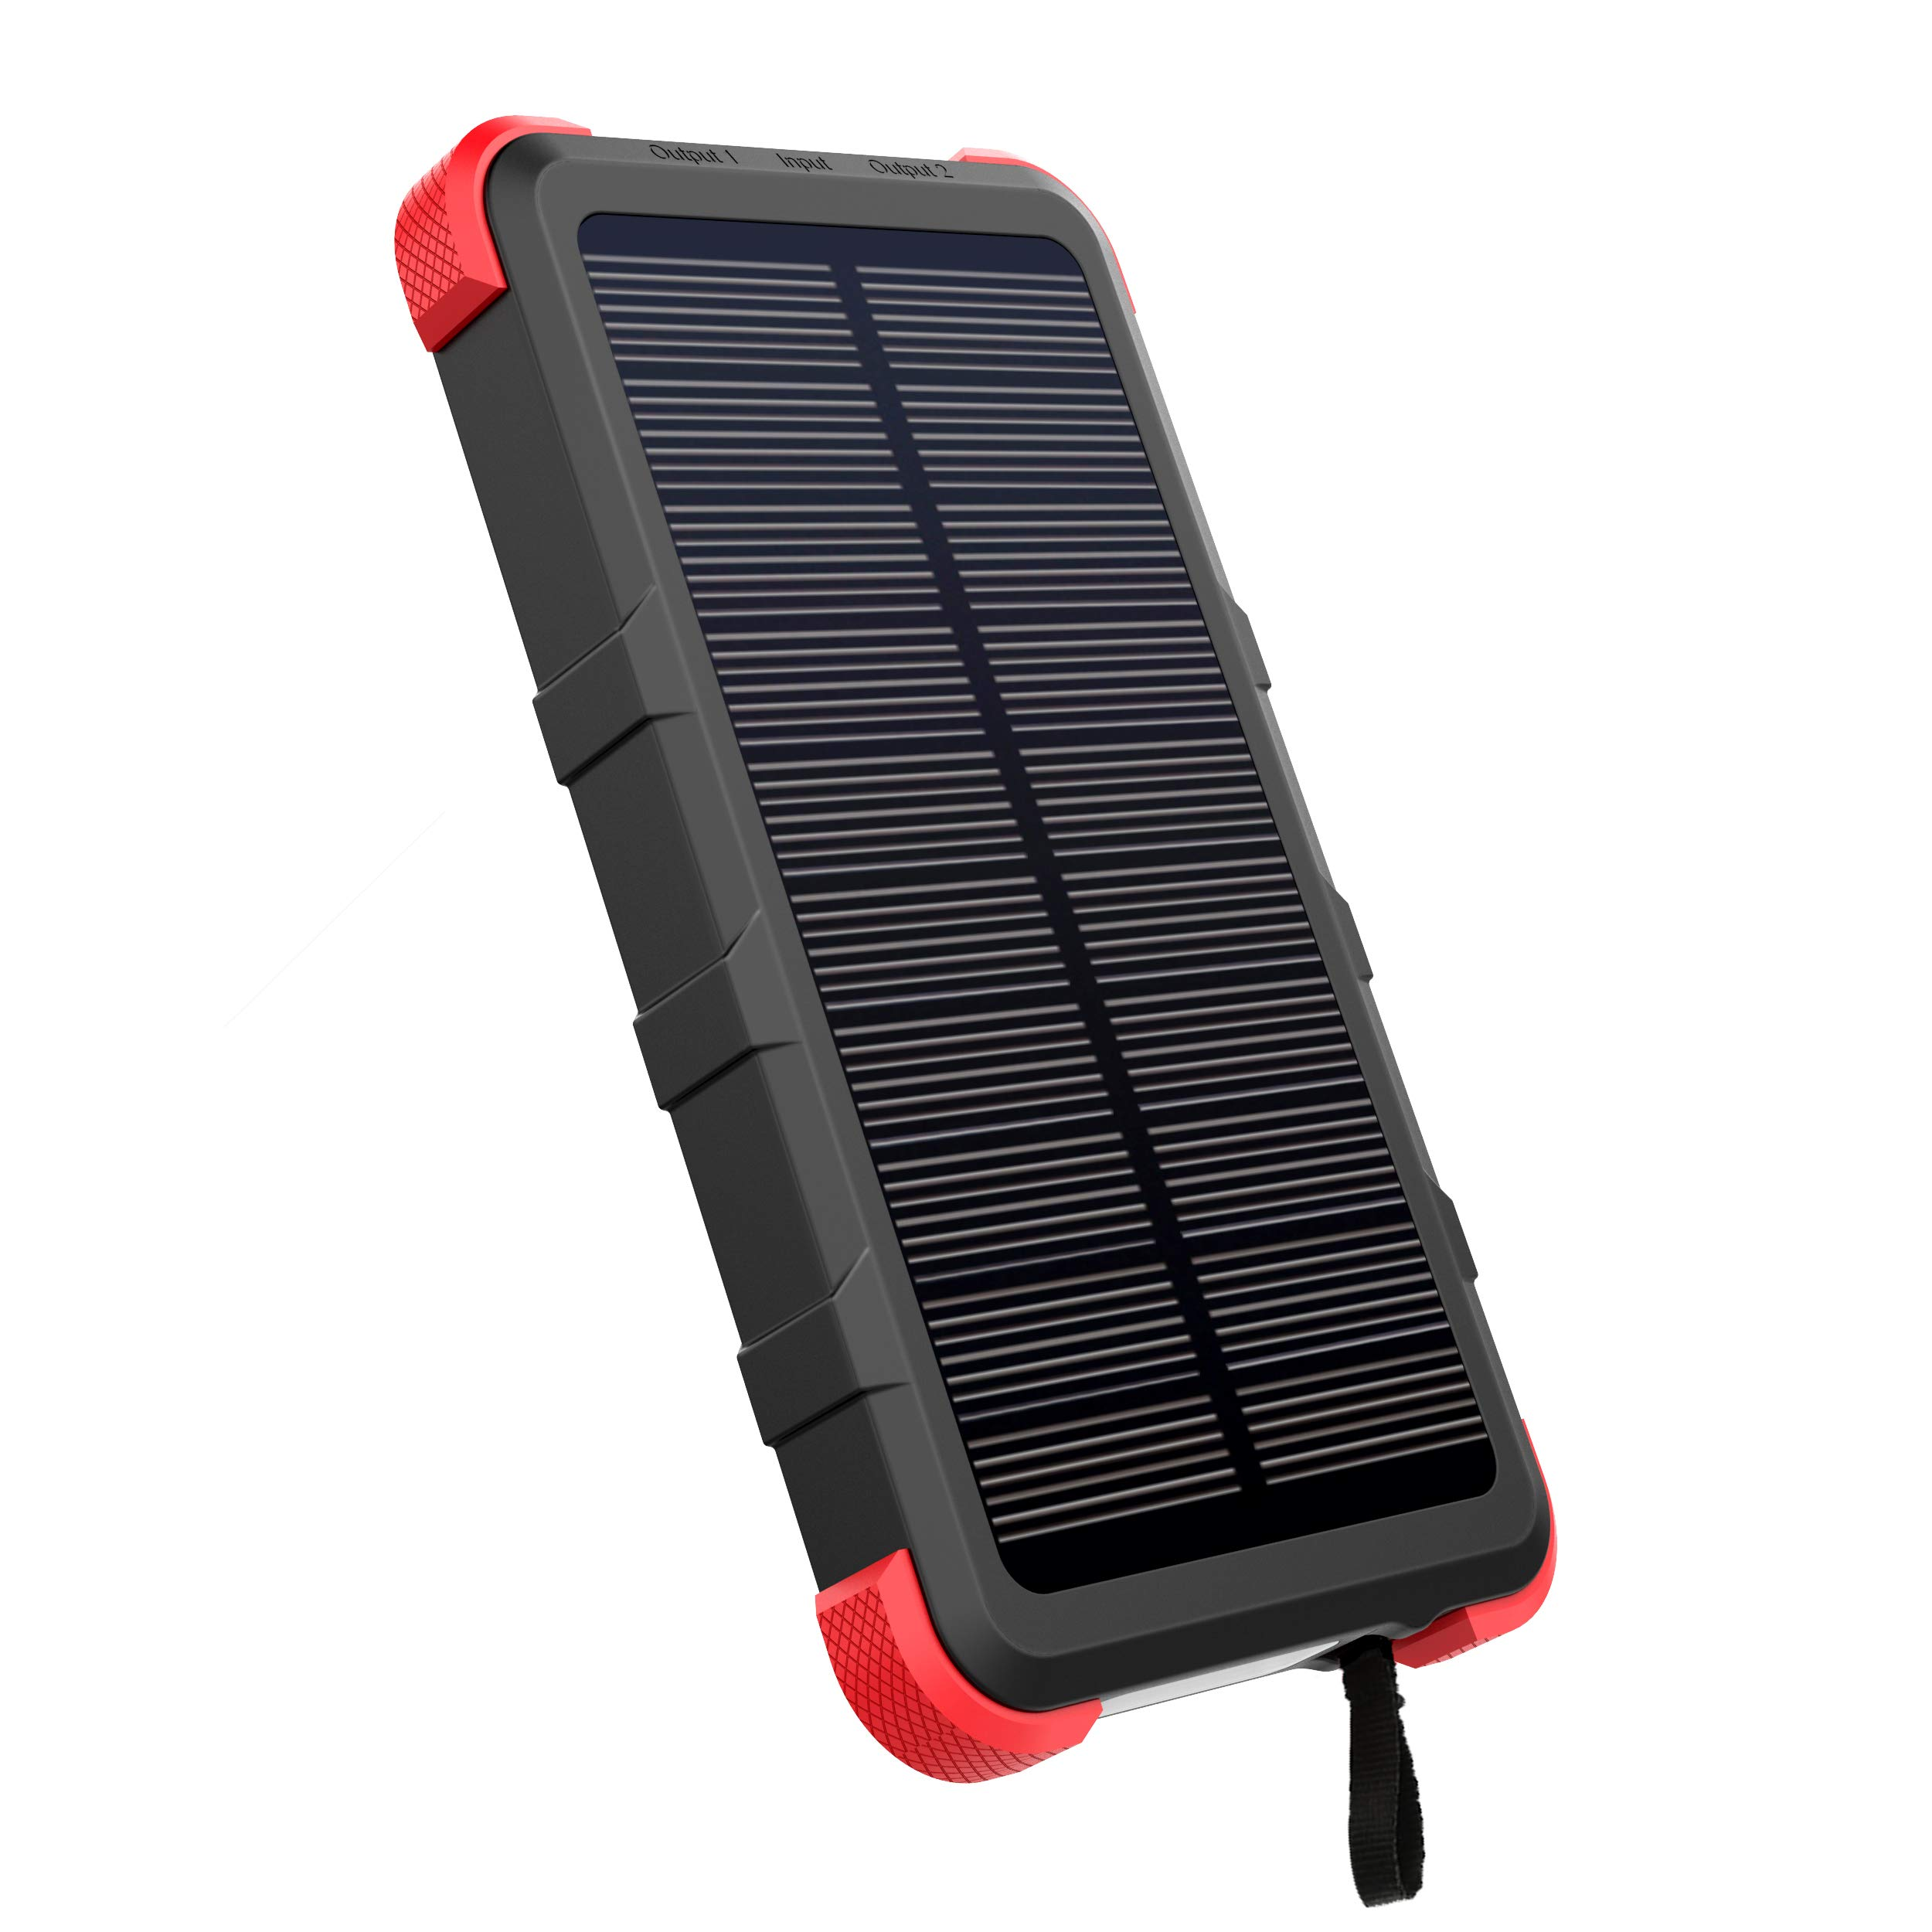 [Upgrade] OUTXE USB C Solar Charger 10000mAh with Flashlight IP67 Waterproof Solar Power Bank Rugged for Hiking Camping Backpacking by OUTXE